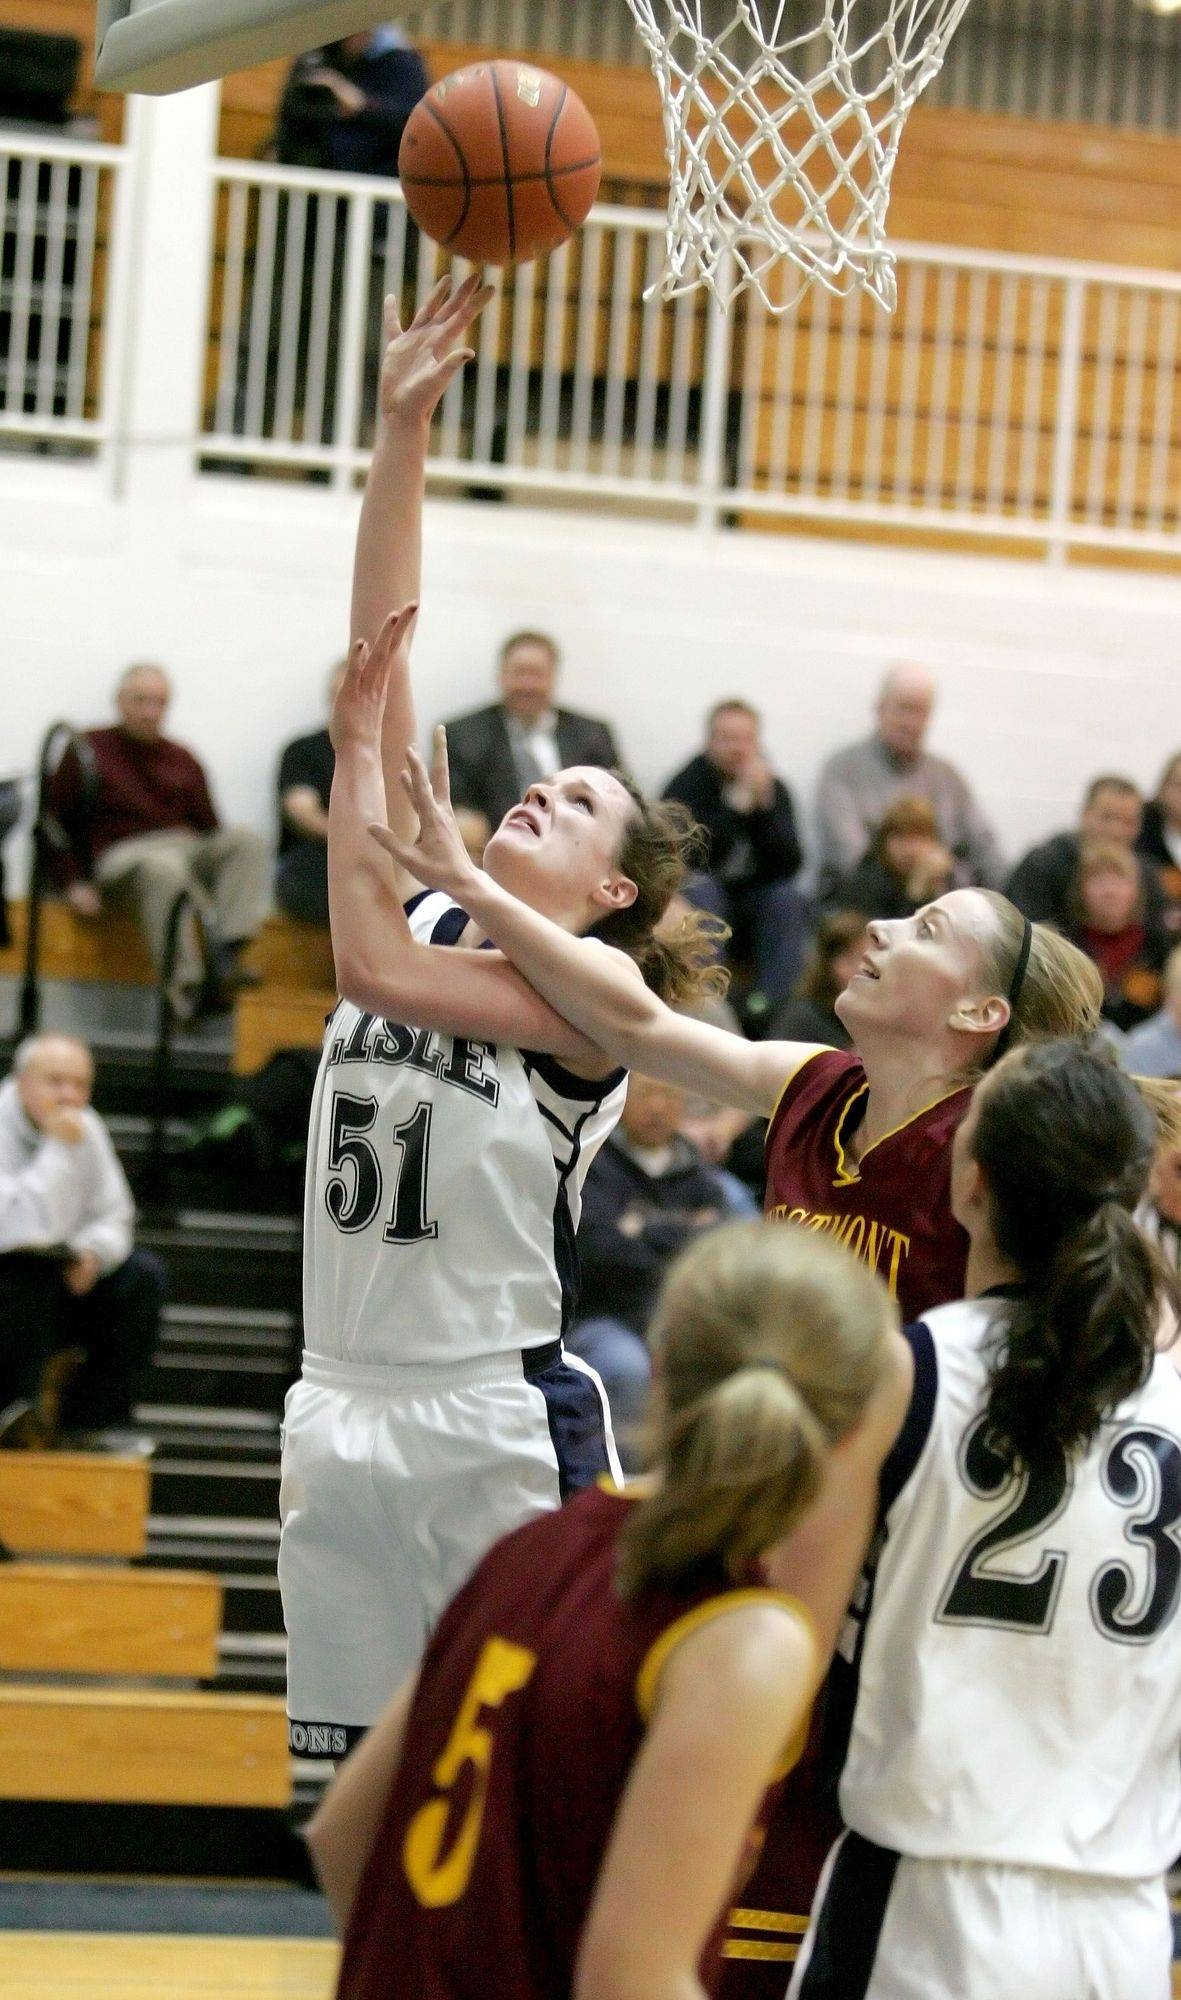 Chelsea Peterson of Lisle reaches up to make a basket in girls basketball action against Westmont on Monday in Lisle.